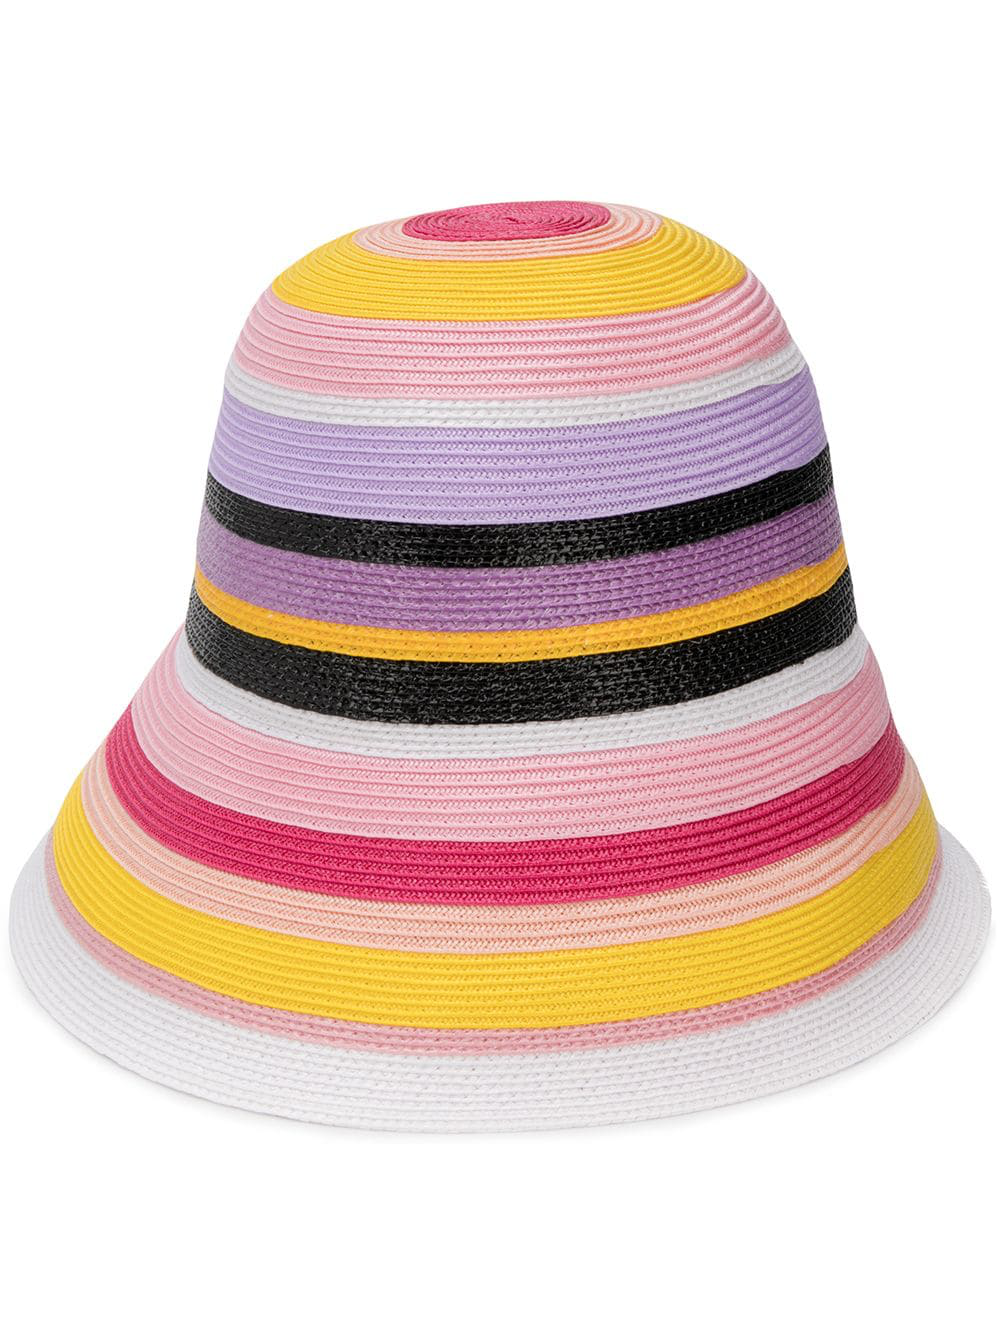 0935dbb5ef1fd Emilio Pucci Striped Hat In Pink